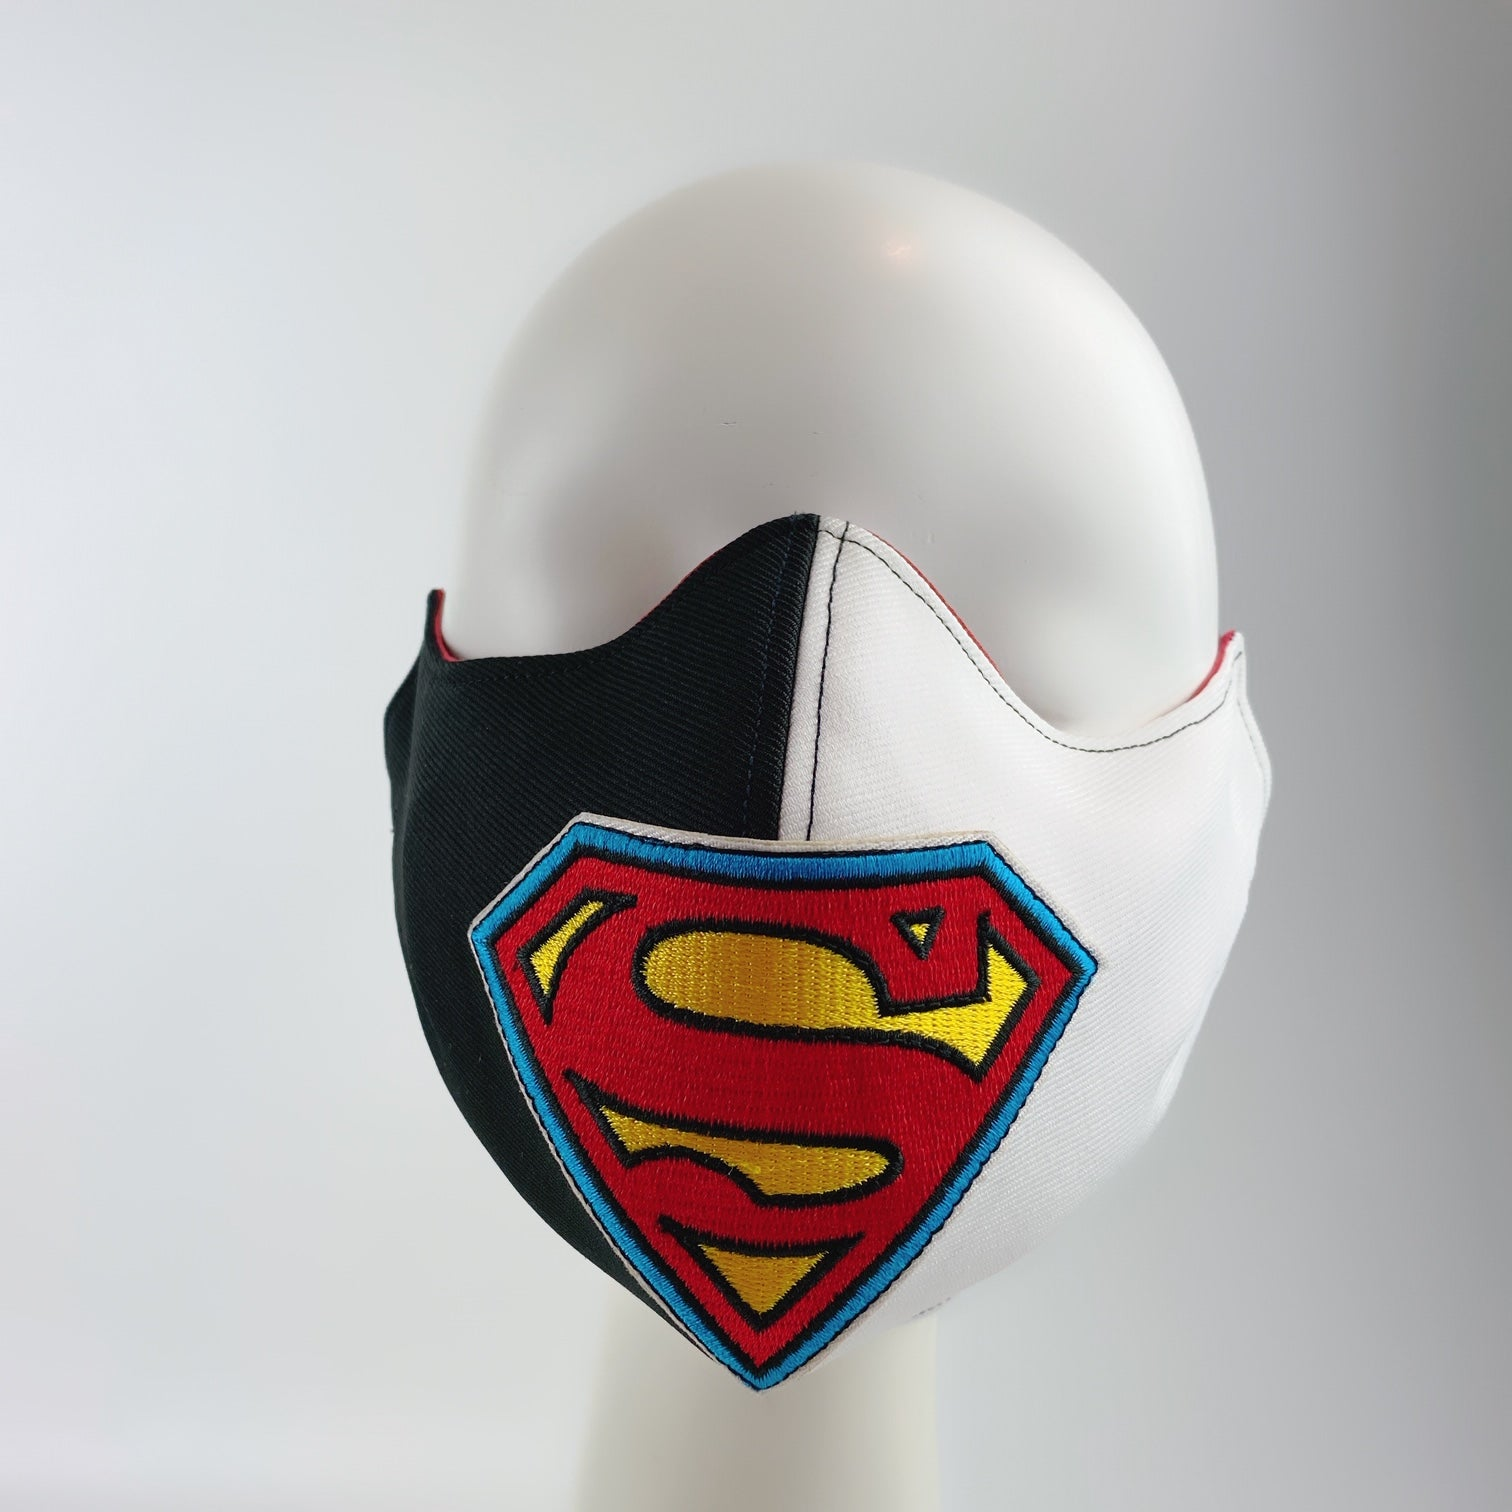 Mask 4 Protect Face Mask Superman Insignia Contrast Black White